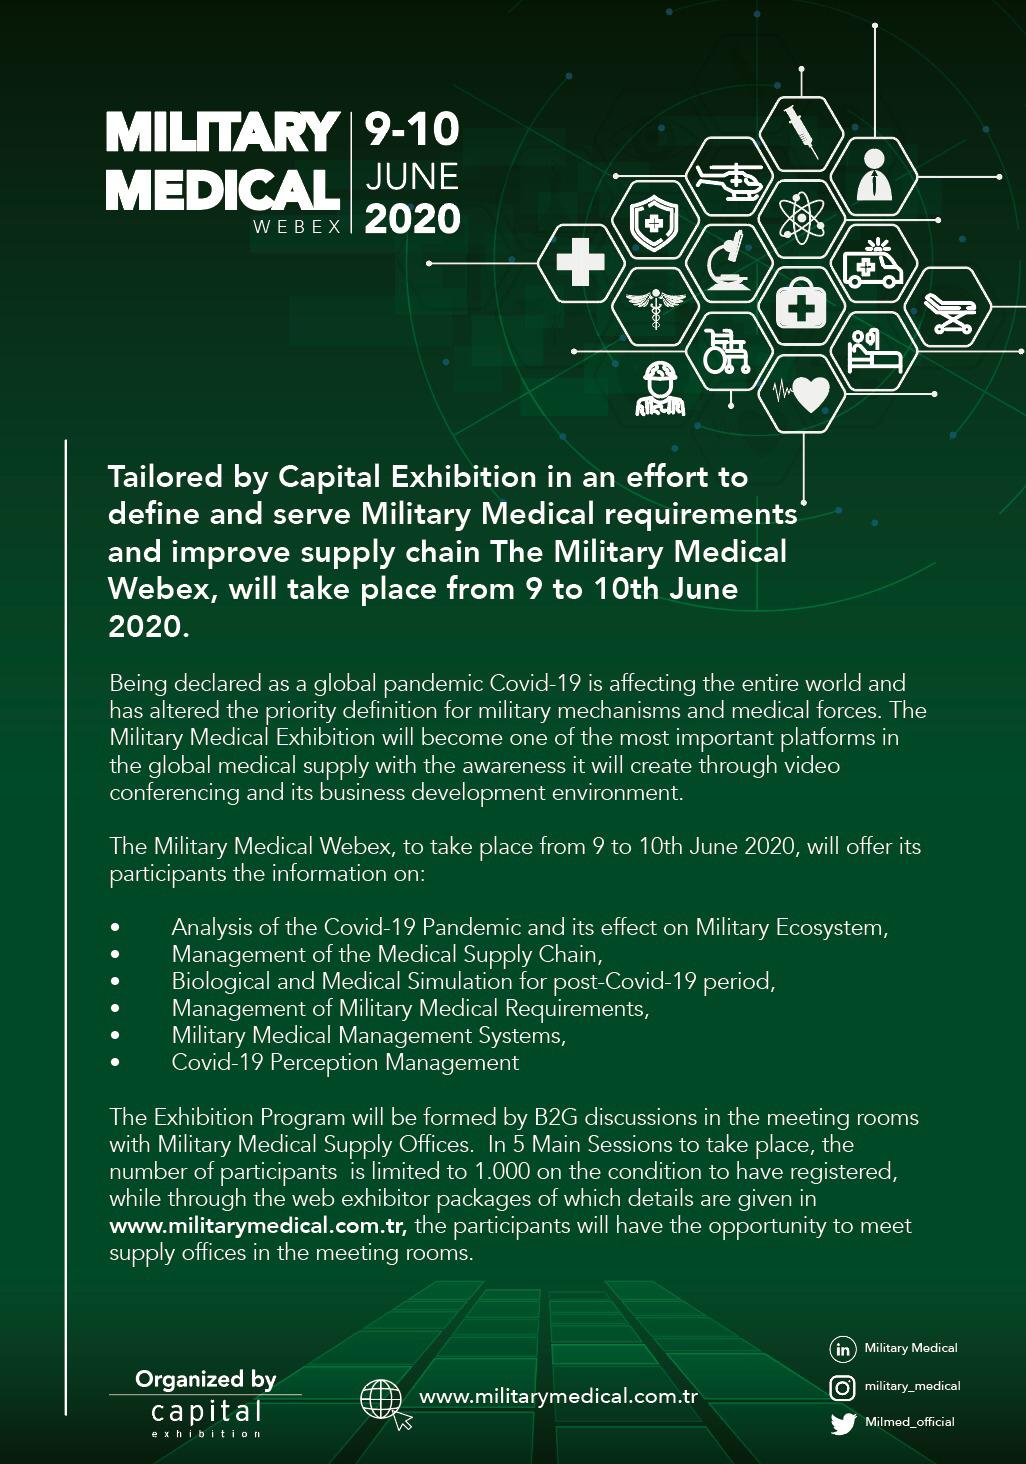 Military Medical Webex will take place on 09-10 June 2020